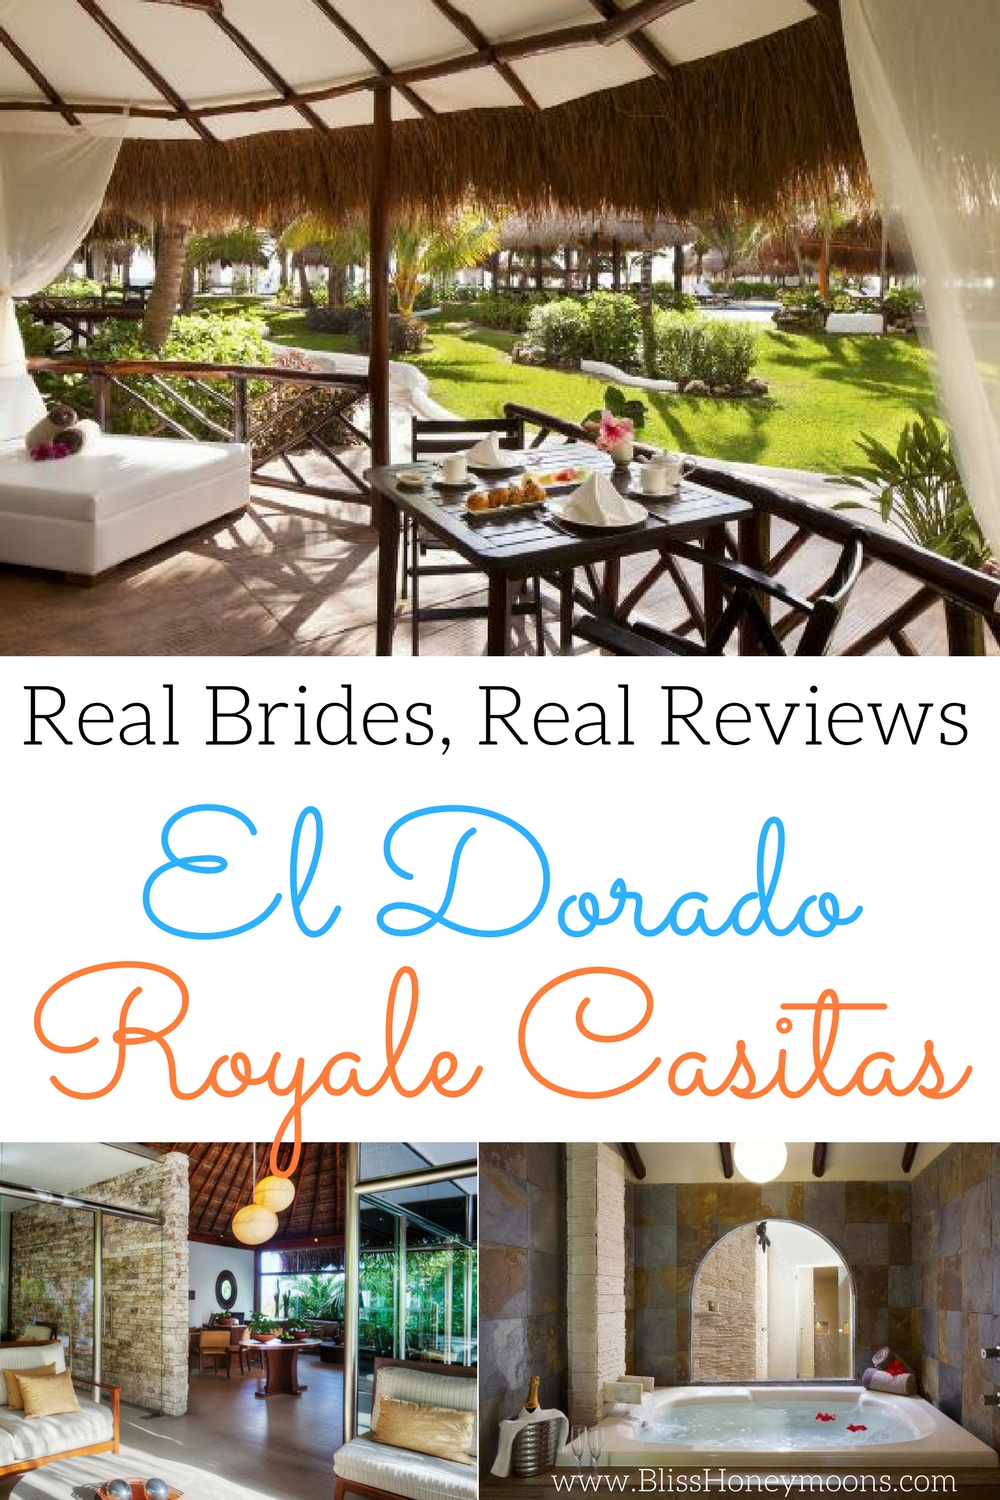 El Dorado Royale Casitas travel review, El Dorado Royale Casitas honeymoon review, activities and food at El Dorado Royale Casitas, best honeymoons review, top honeymoon destinations